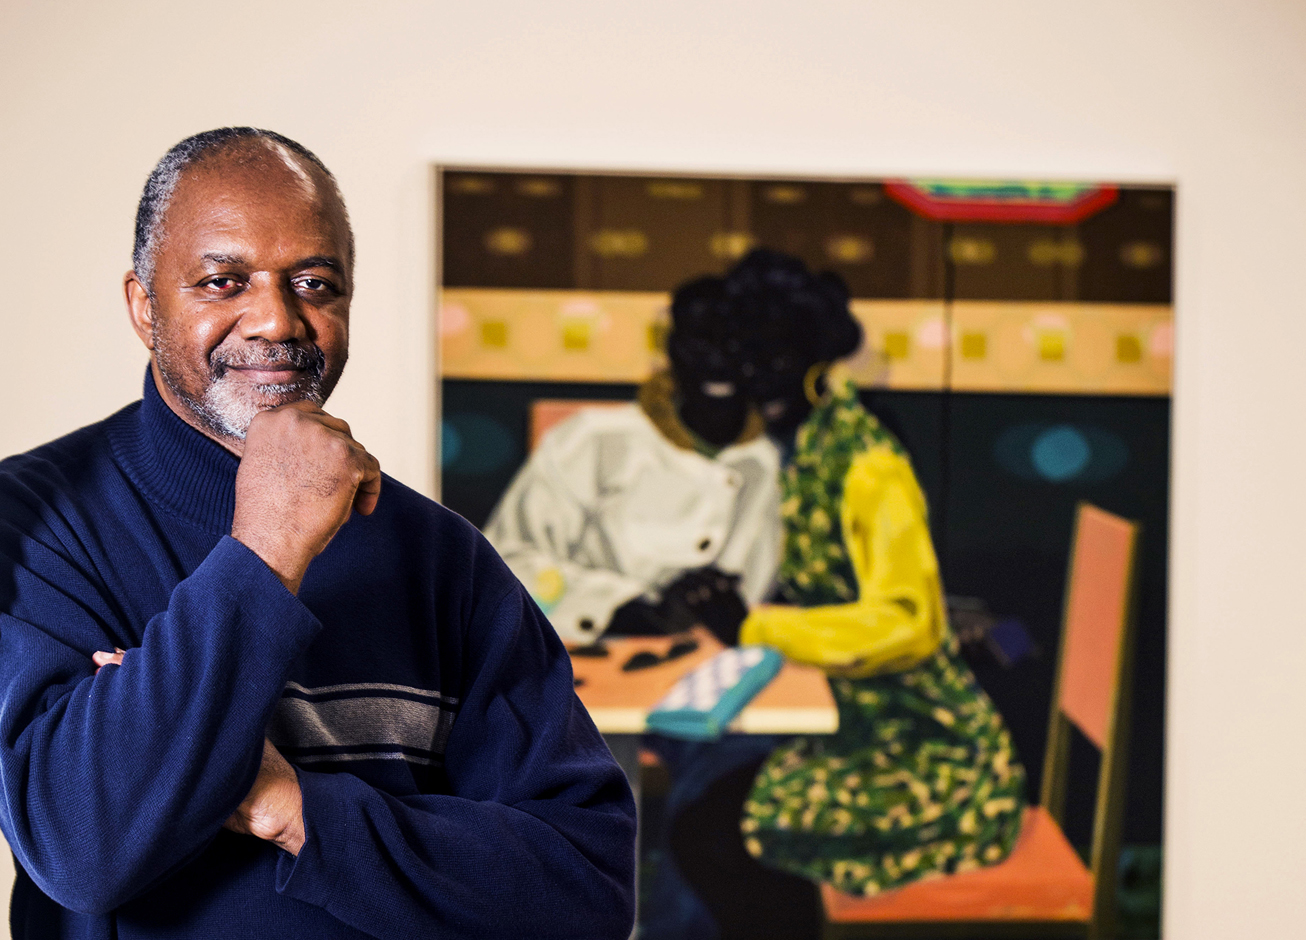 Artist Kerry James Marshall. Photograph by Felix Clay